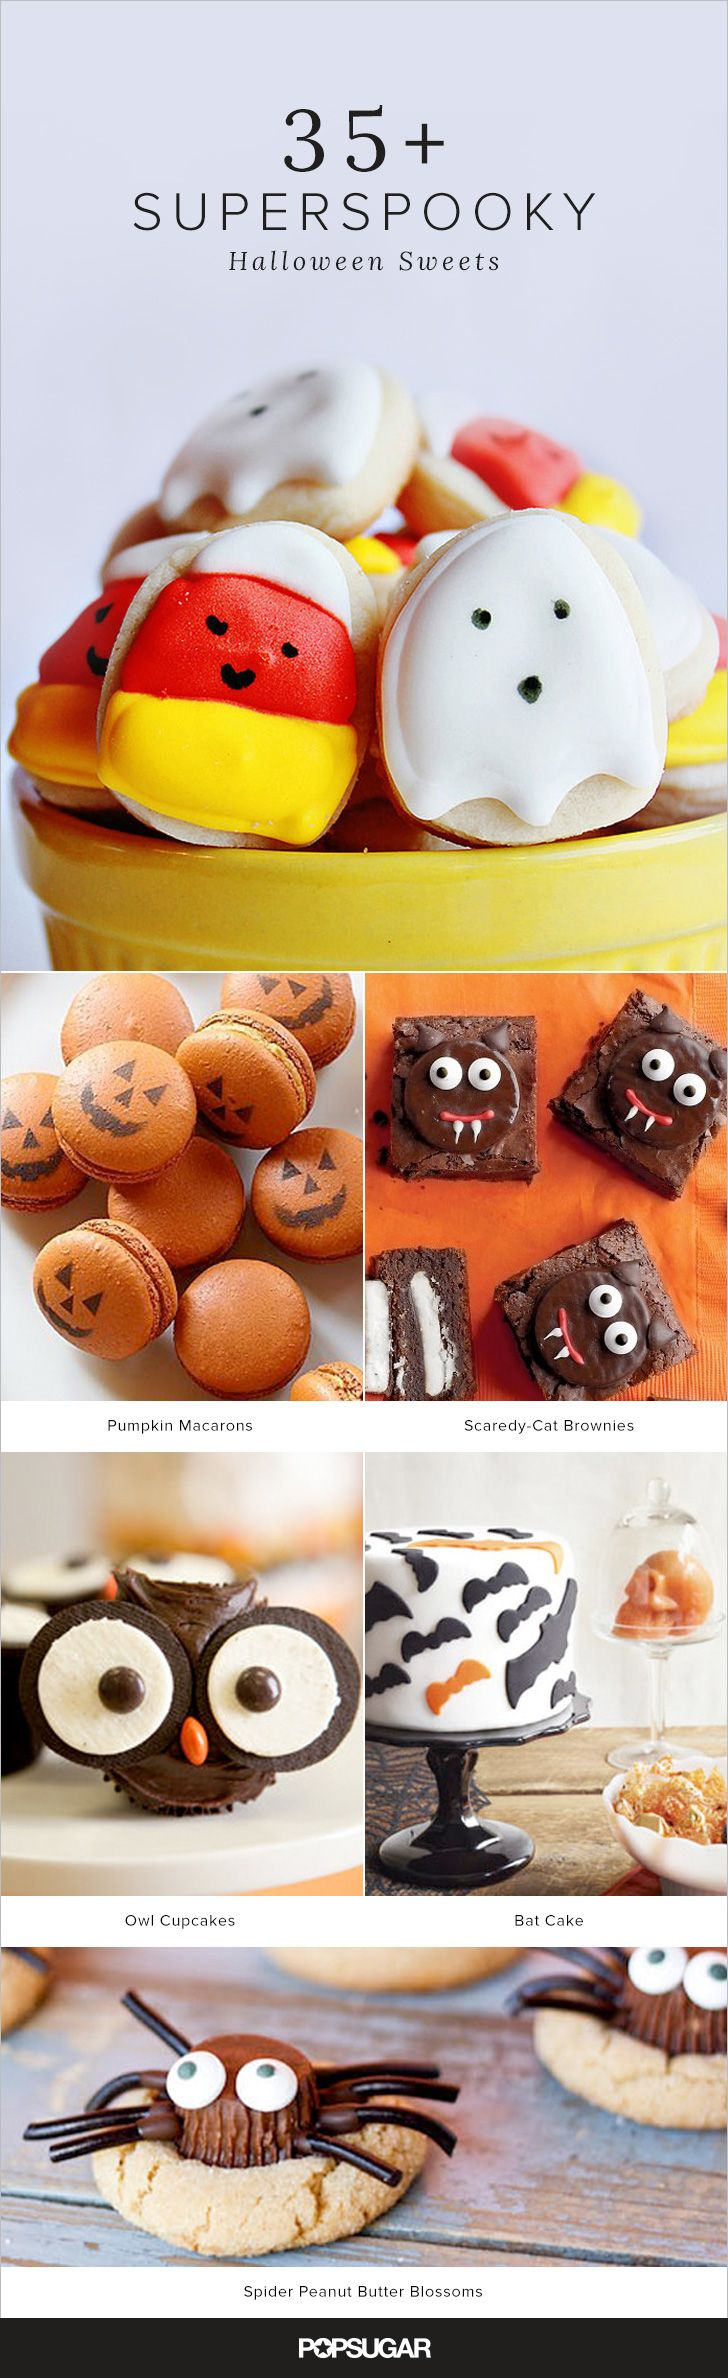 Halloween doesn't have to be all about candy! We've got the recipes for over 35 awesome, creative desserts, all sure to inspire you to create your own spooky cookies, cakes, and more.